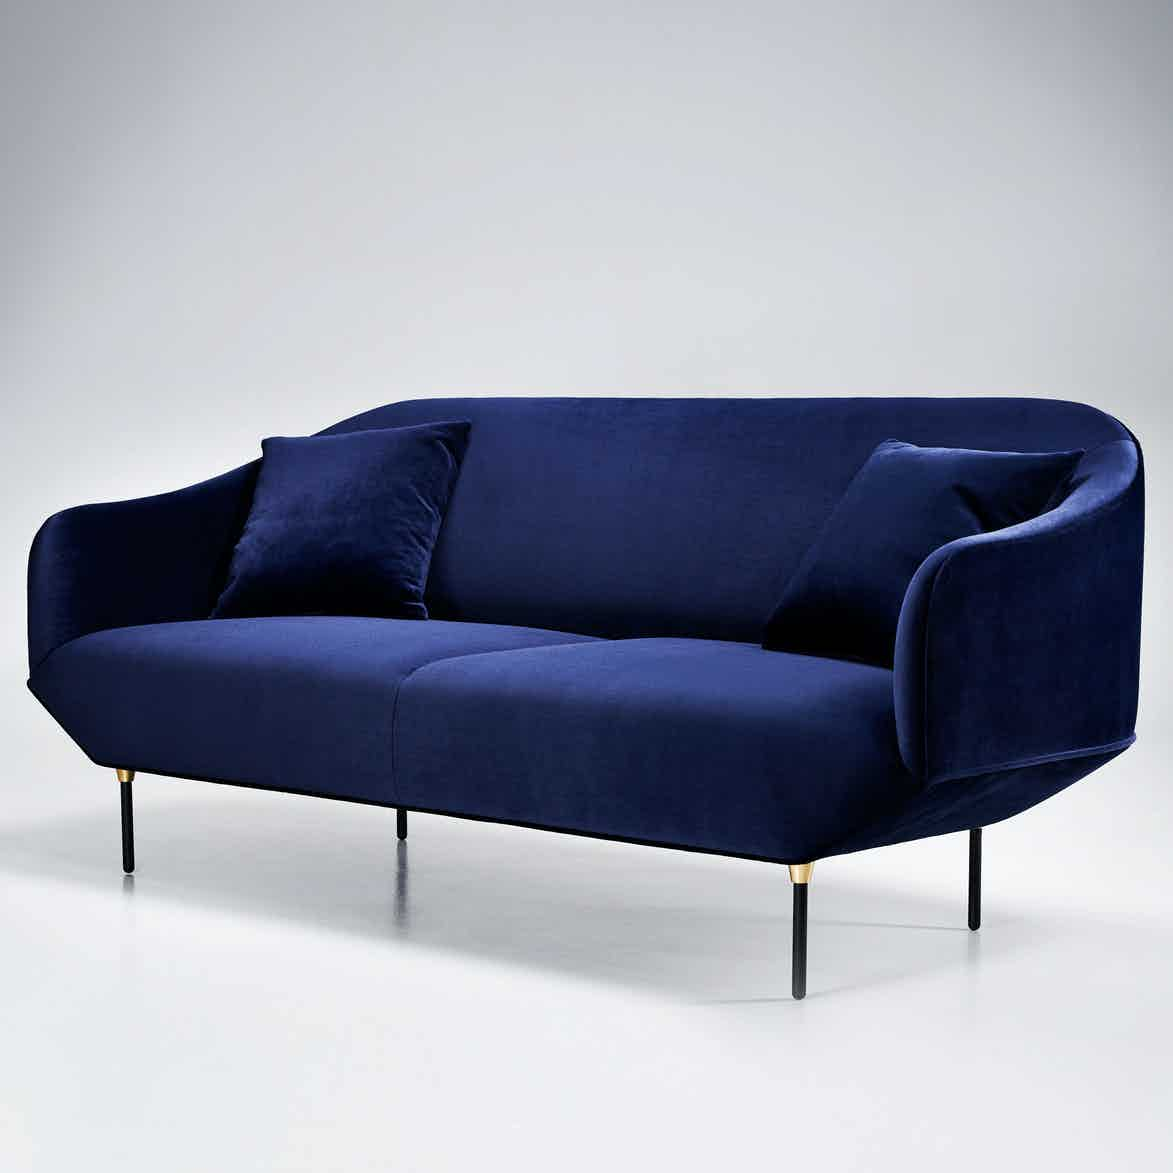 Won blue velvet bale sofa angle haute living